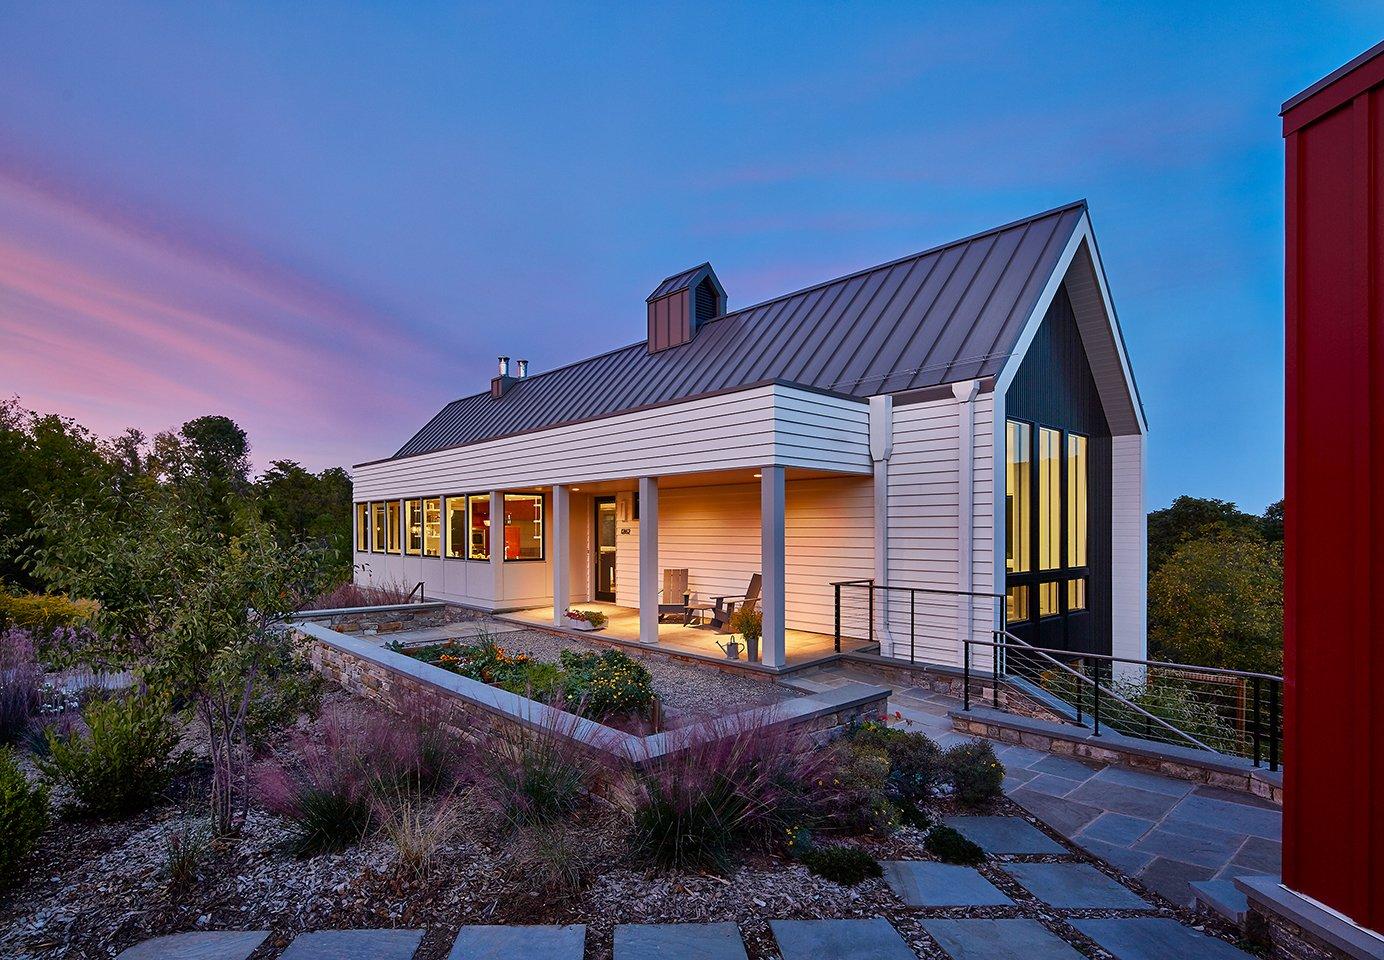 A Modern Farmhouse Blends Community Minded Living With The Country Landscape